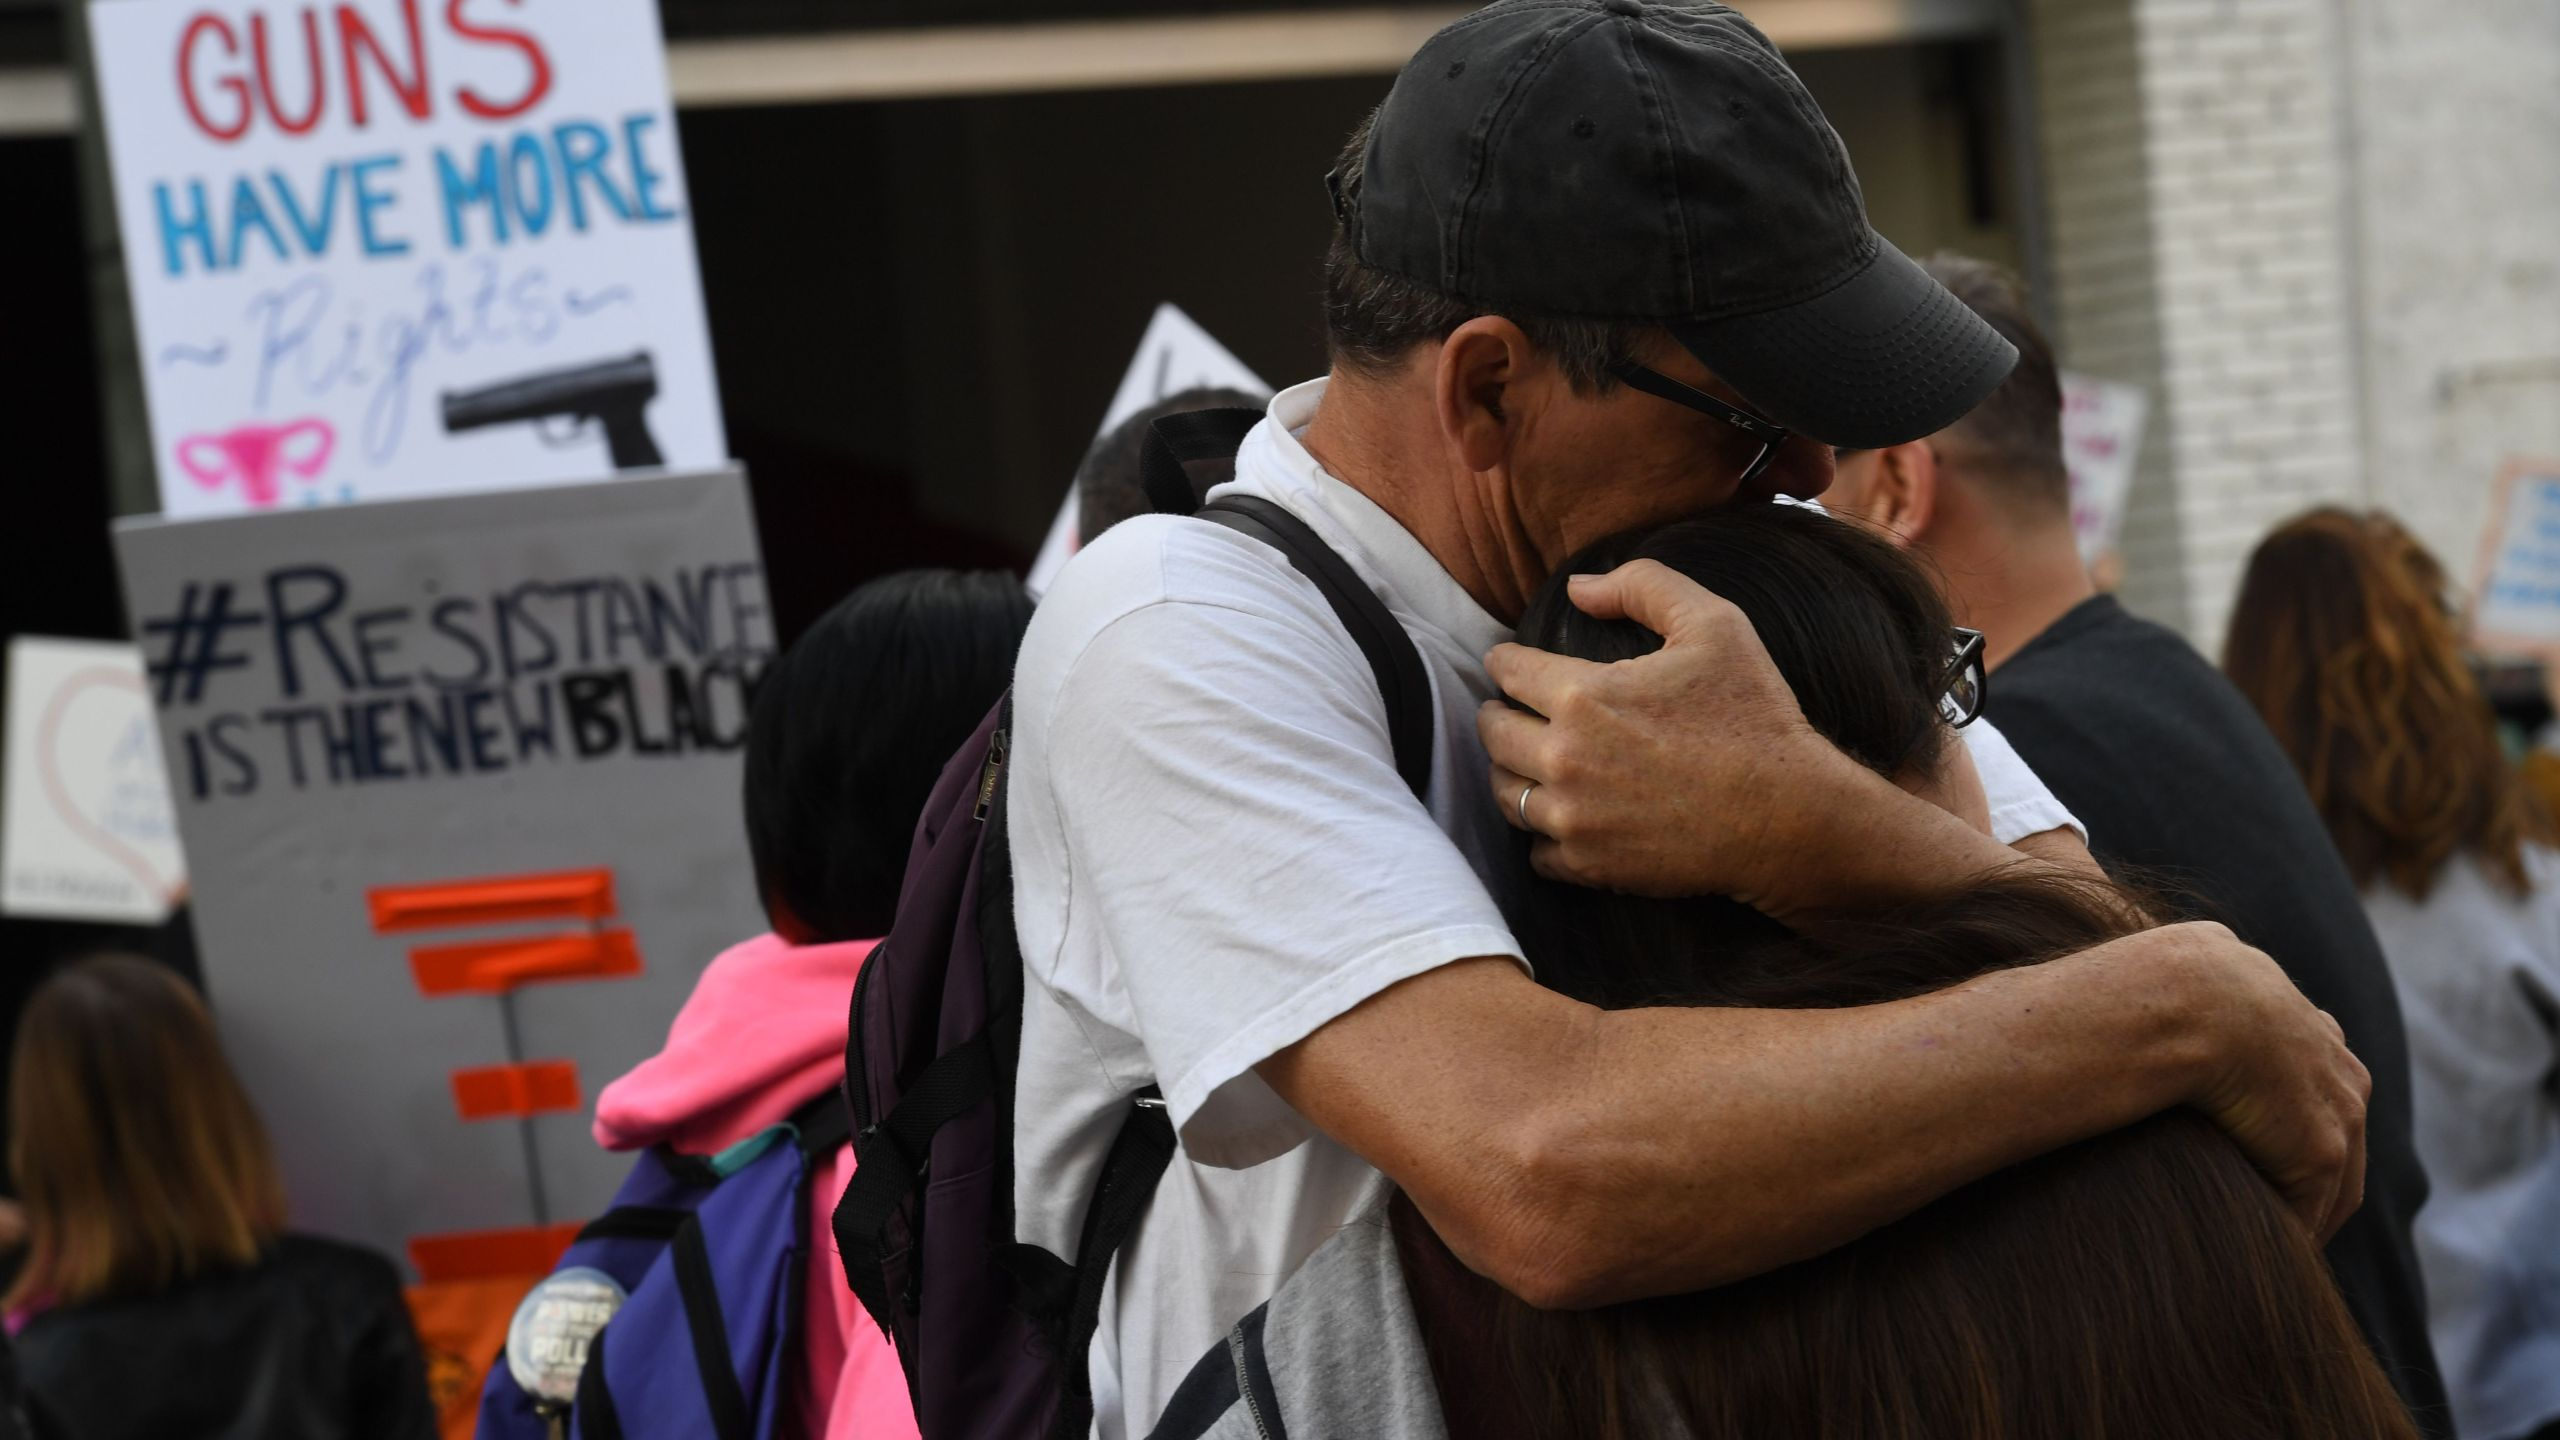 """Two people hug as crowds rally for tighter gun laws during the student-organized """"March For Our Lives"""" protest in Los Angeles on March 24, 2018. (Credit: MARK RALSTON/AFP/Getty Images)"""